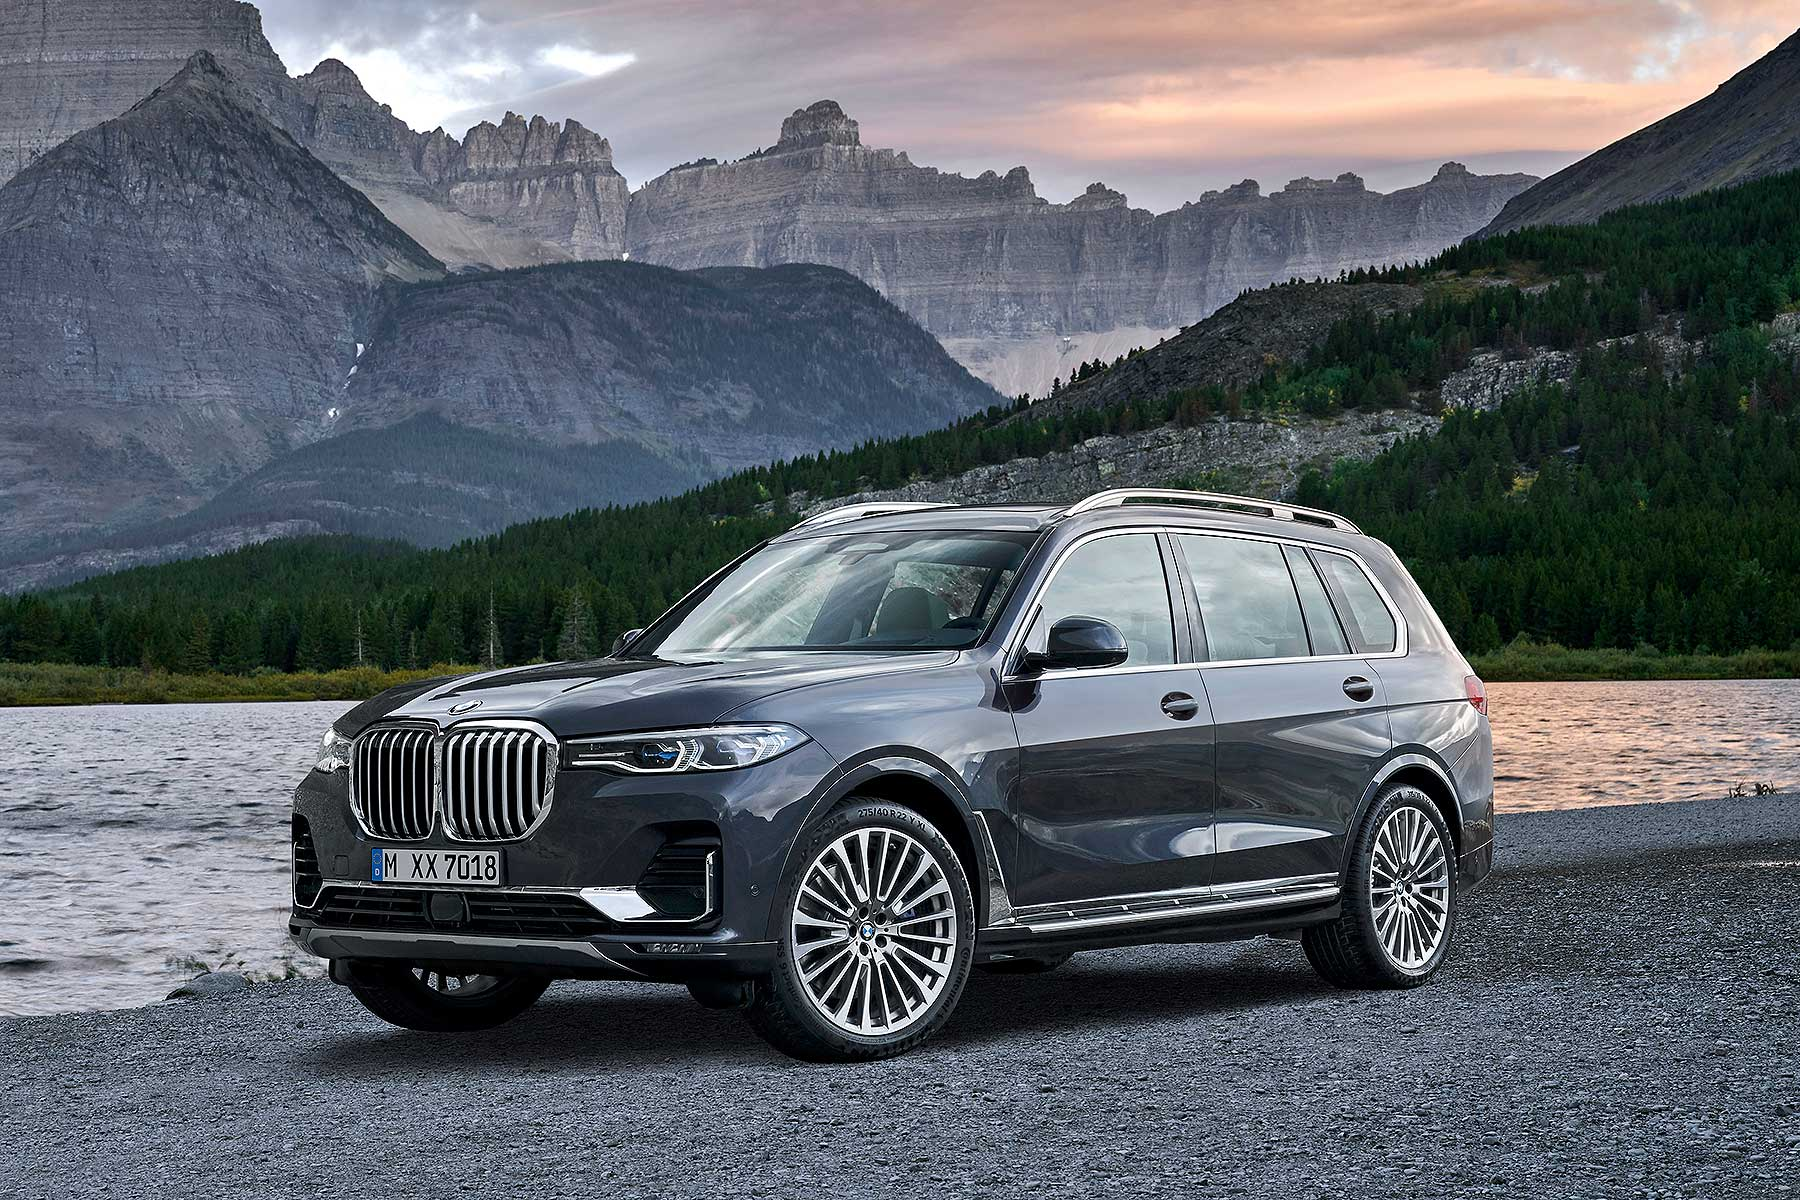 Bold New 2019 Bmw X7 Range Topping Suv Revealed Motoring